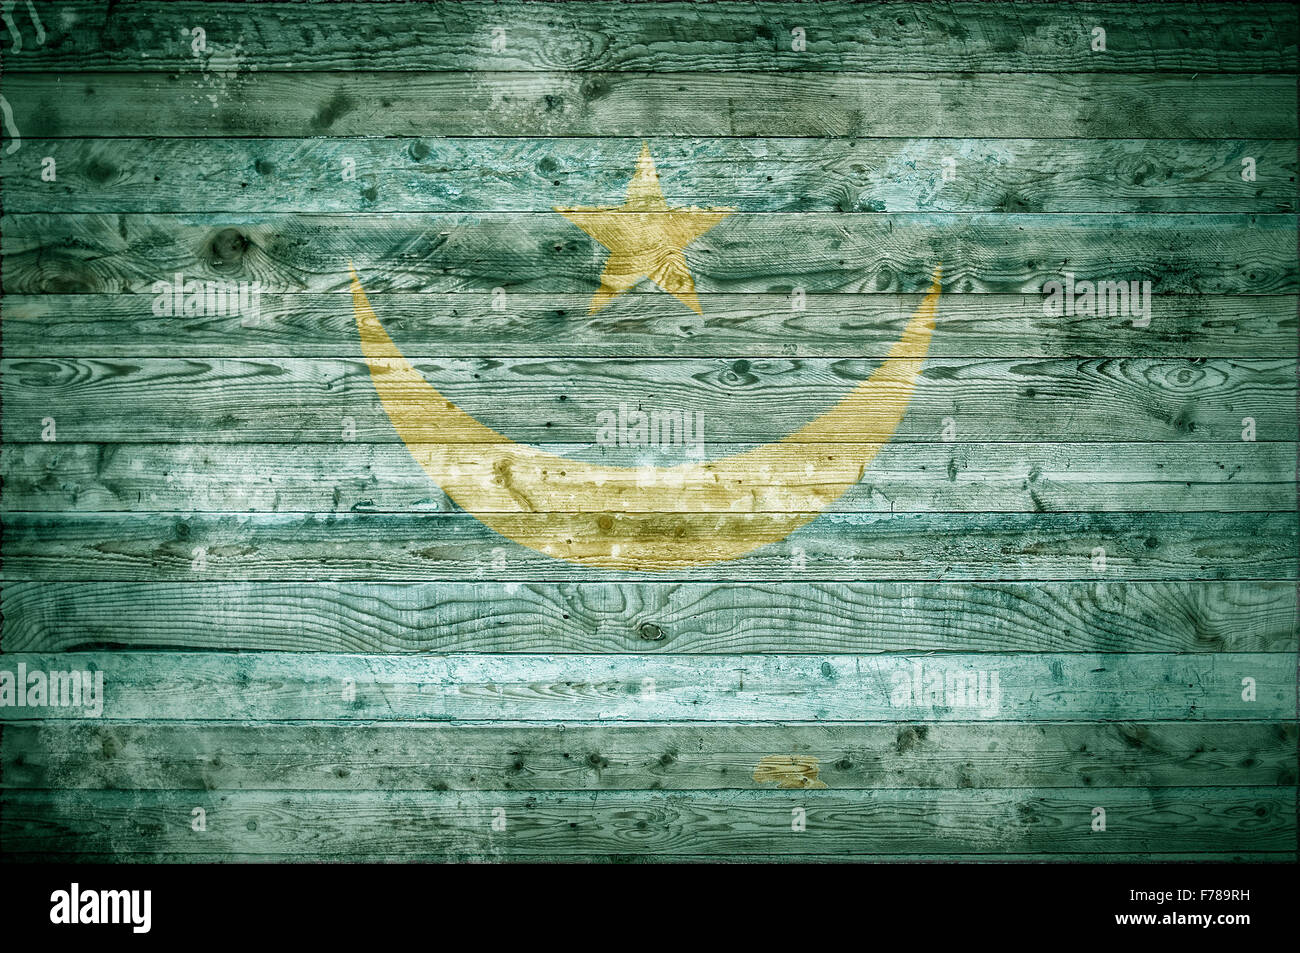 A vignetted background image of the flag of Mauritania painted onto wooden boards of a wall or floor. - Stock Image